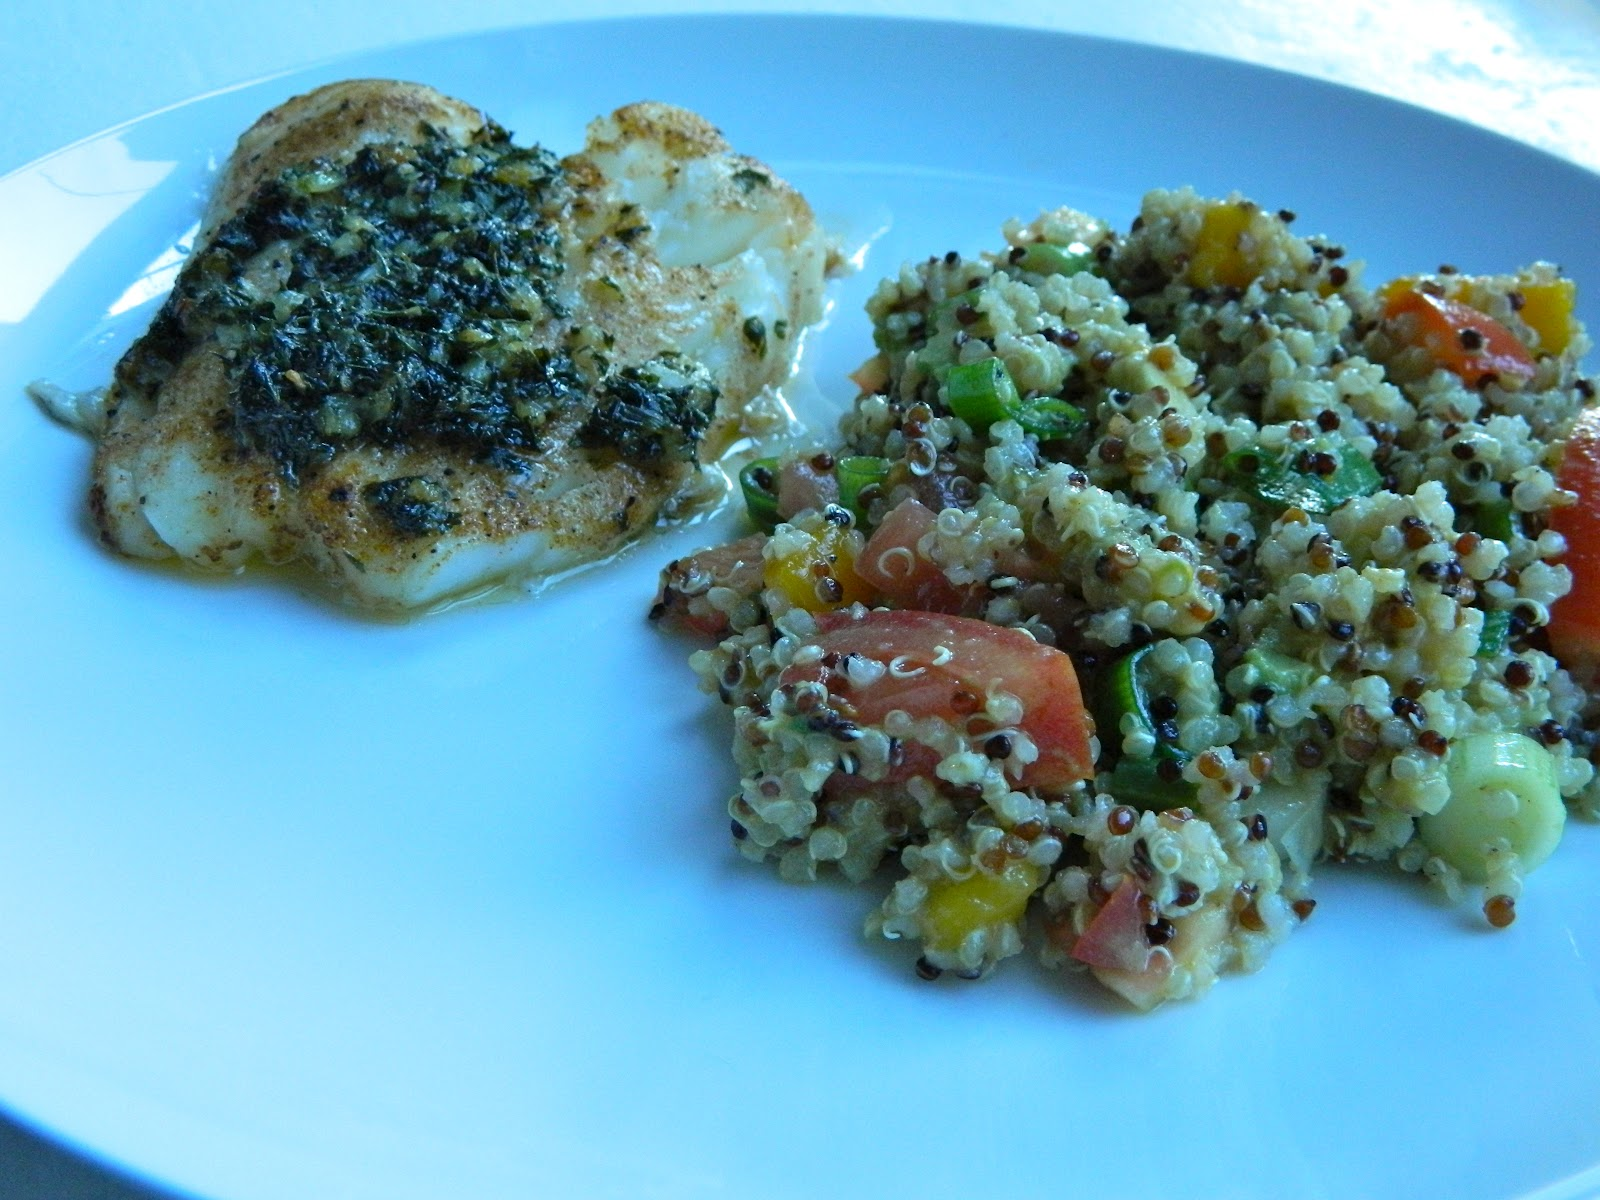 ... : Grilled Sea Bass and Quinoa Salad with Mango, Avocado and Tomatoes